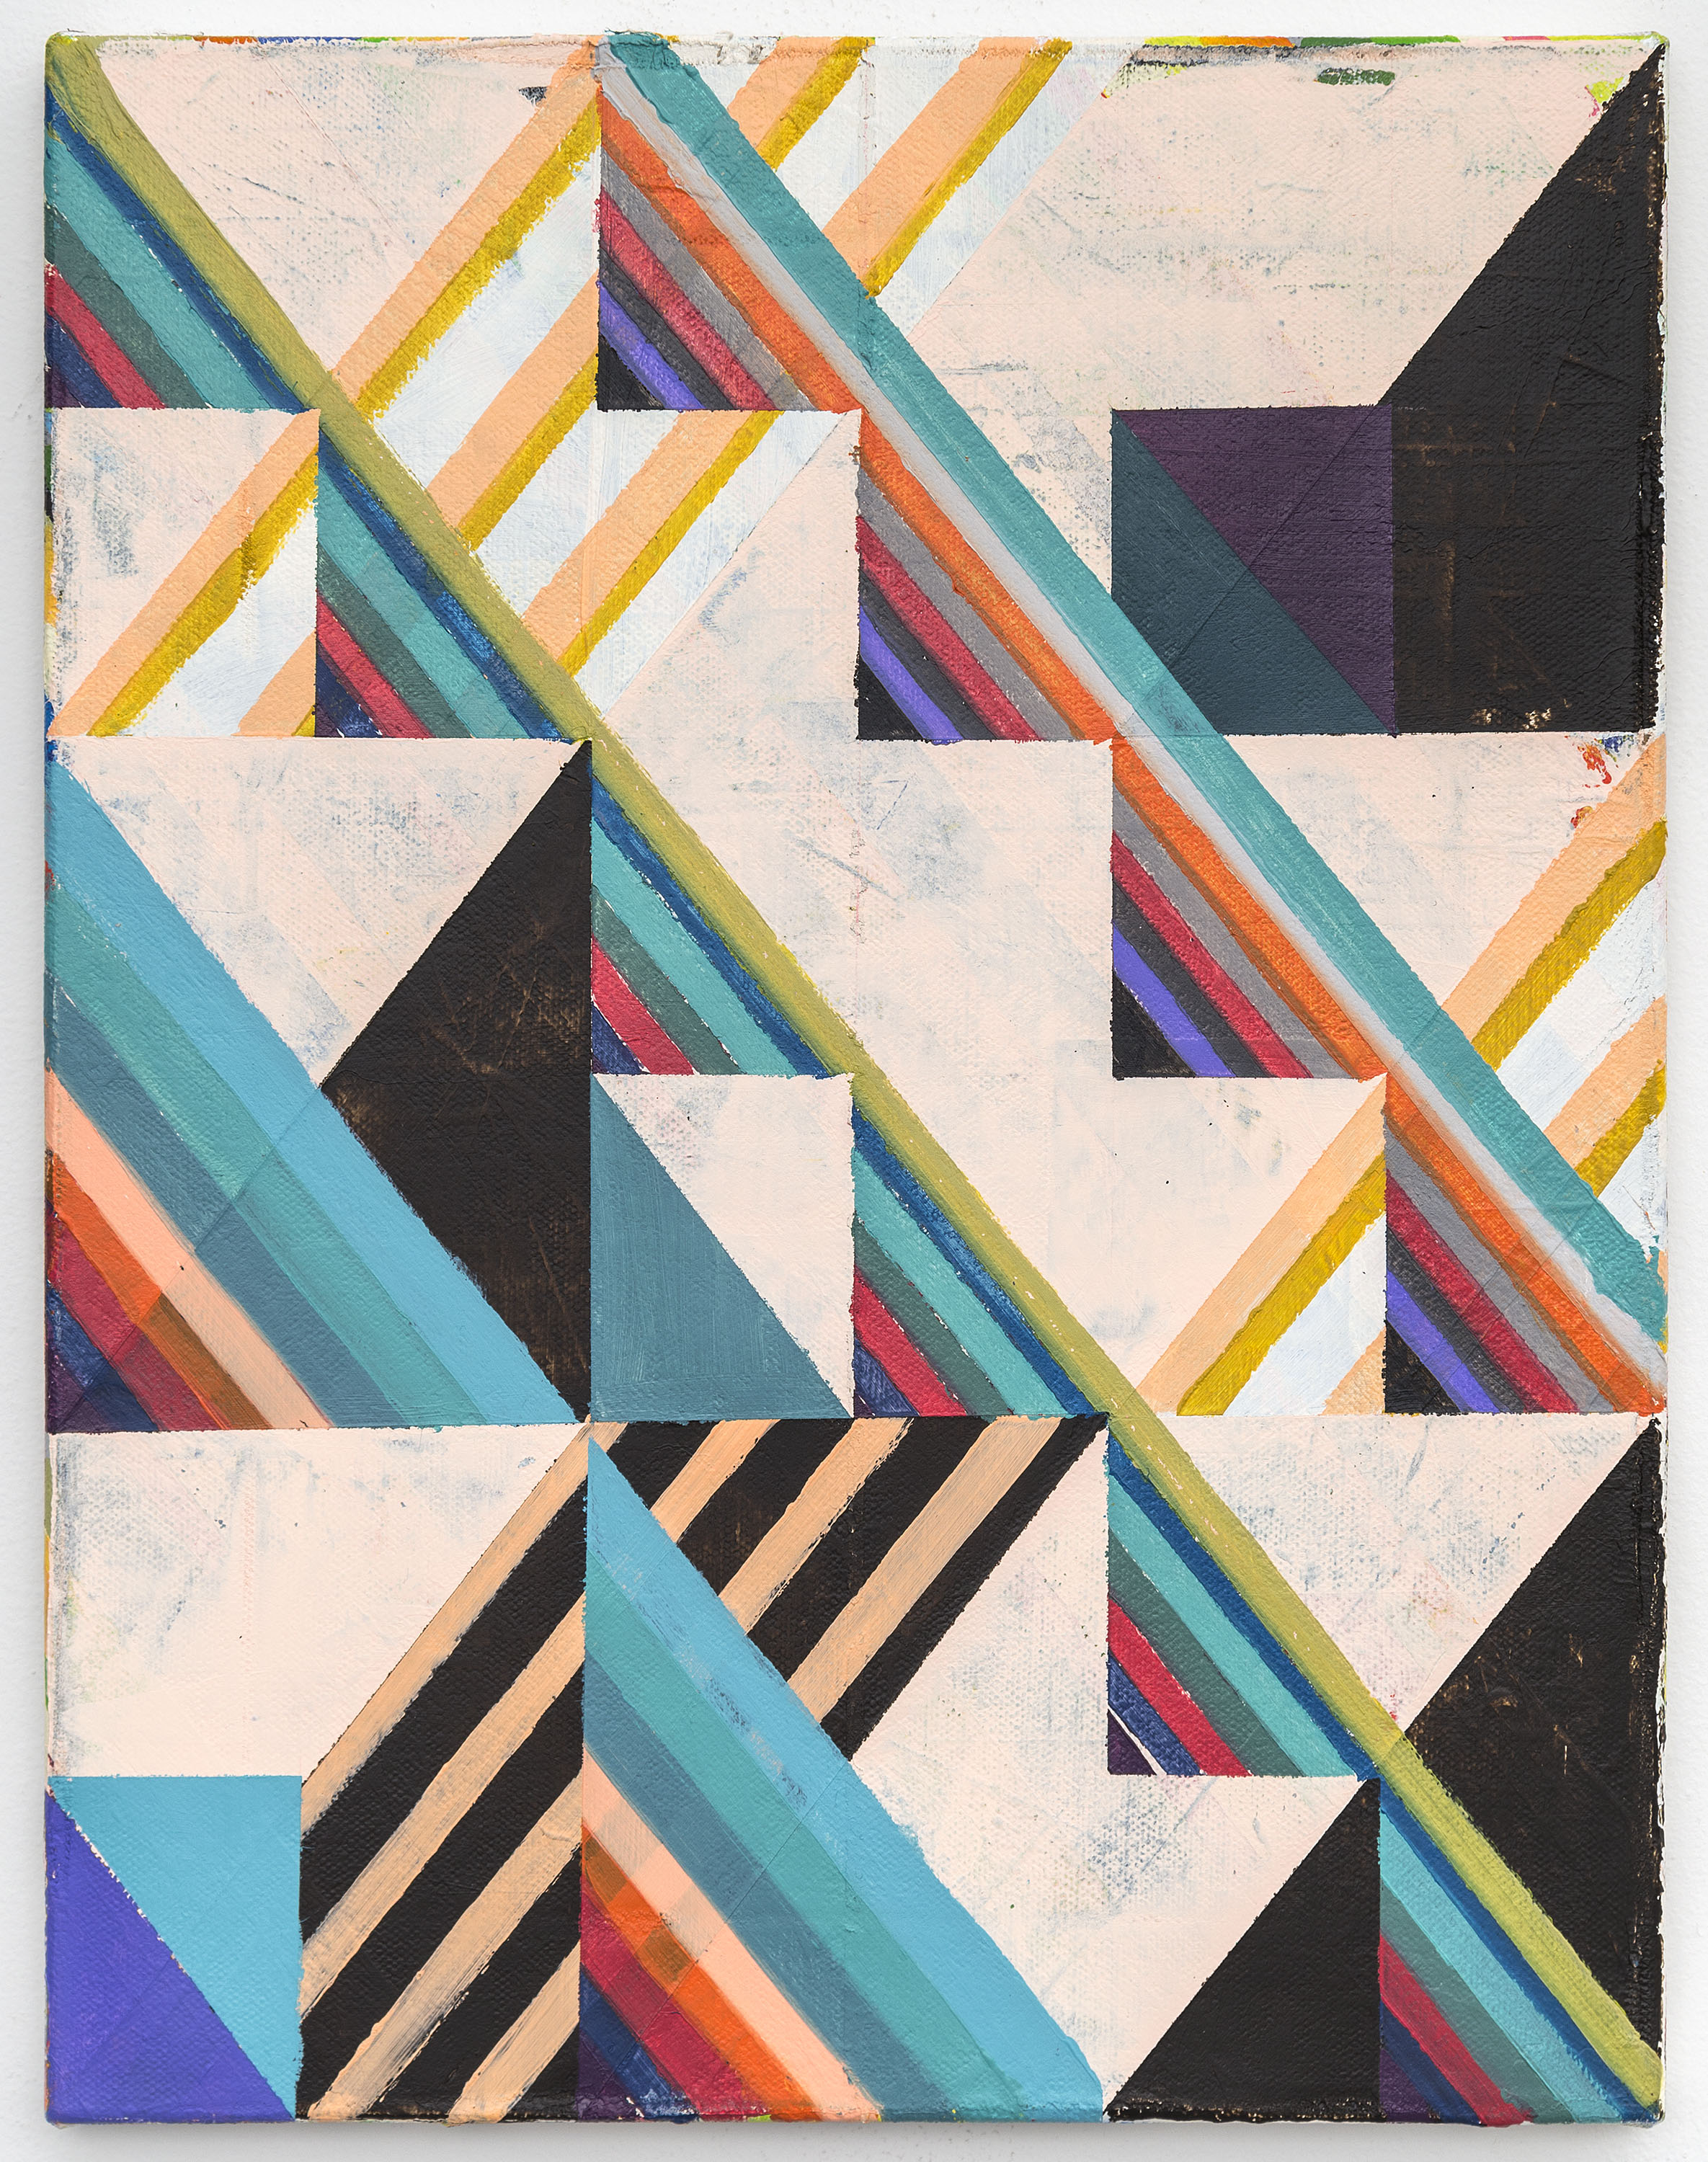 Stacks, 2016, Acrylic and colored pencil on canvas, 36x28cm